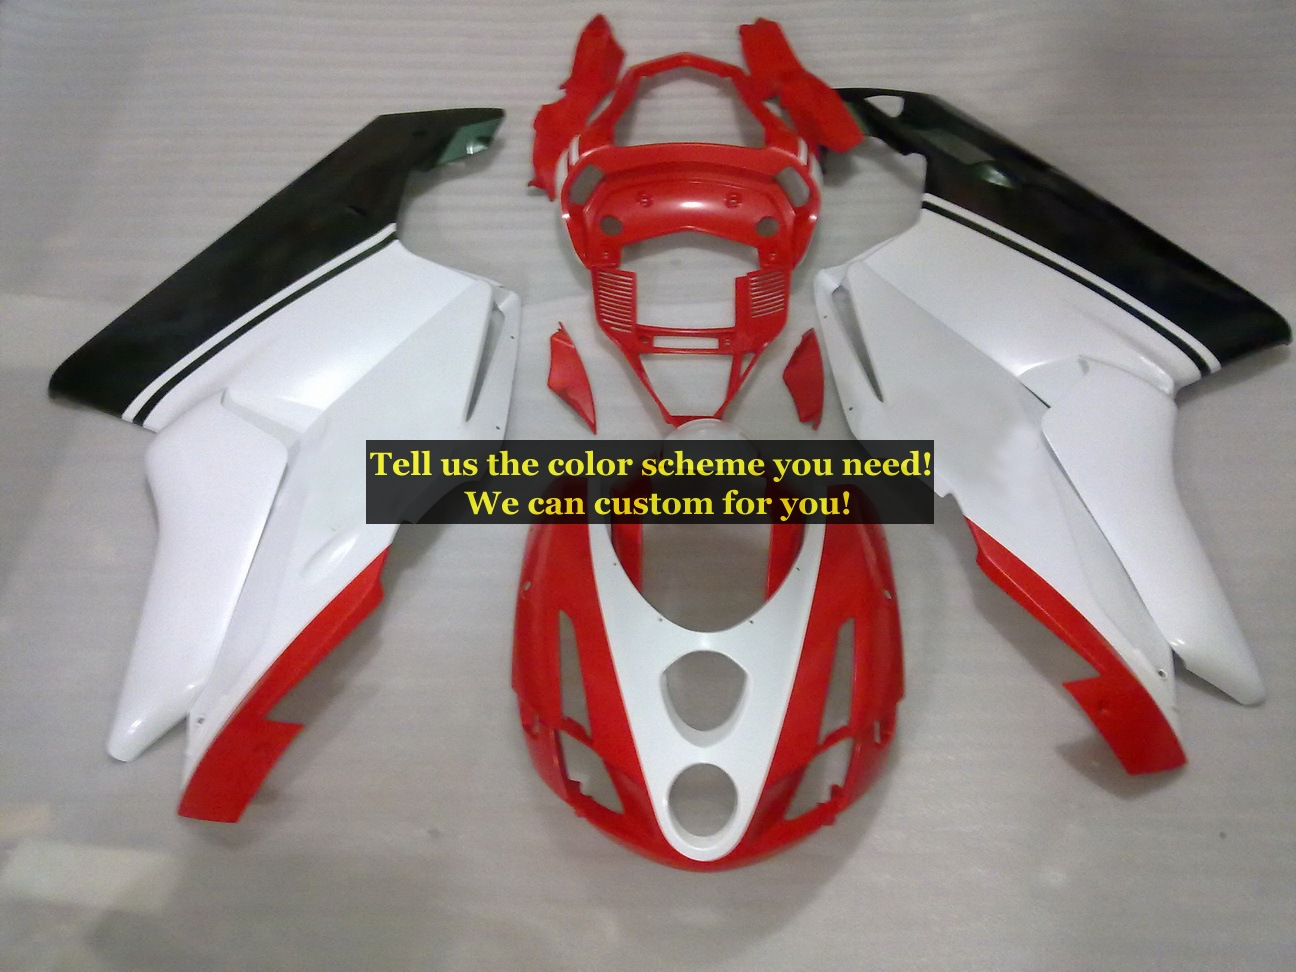 Custom Injection Molding Fairing kits For Ducati 999 749 2003 2004